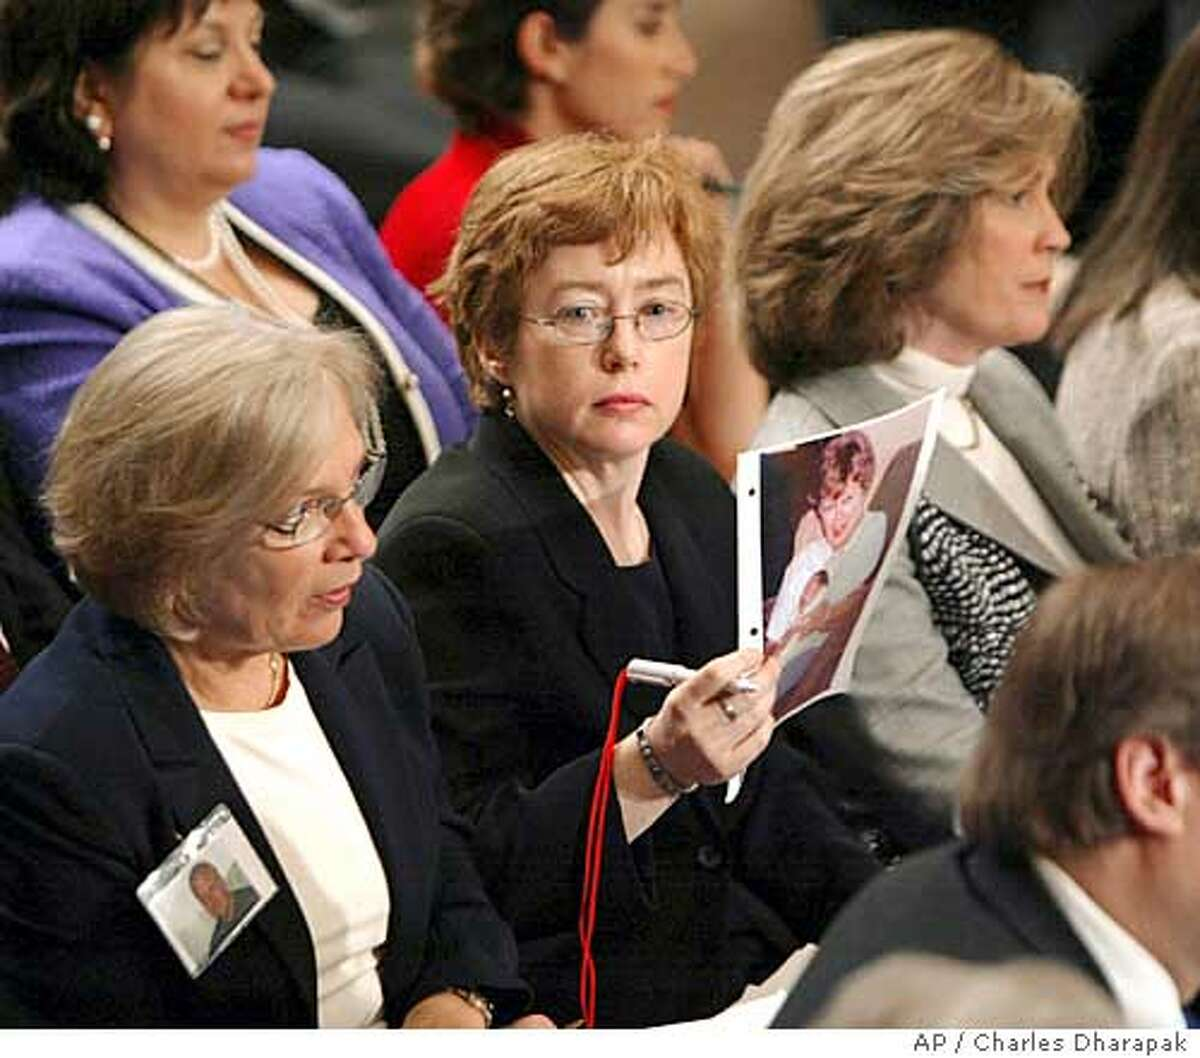 Terry McGowan, from New York City, center, holds a picture of her mother, who died in the South Tower of the World Trade Center during testimoney by National Security Adviser Condoleezza Rice to the independent commission investigating the Sept. 11 attacks Thursday, April 8, 2004, in Washington. (AP Photo/Charles Dharapak)